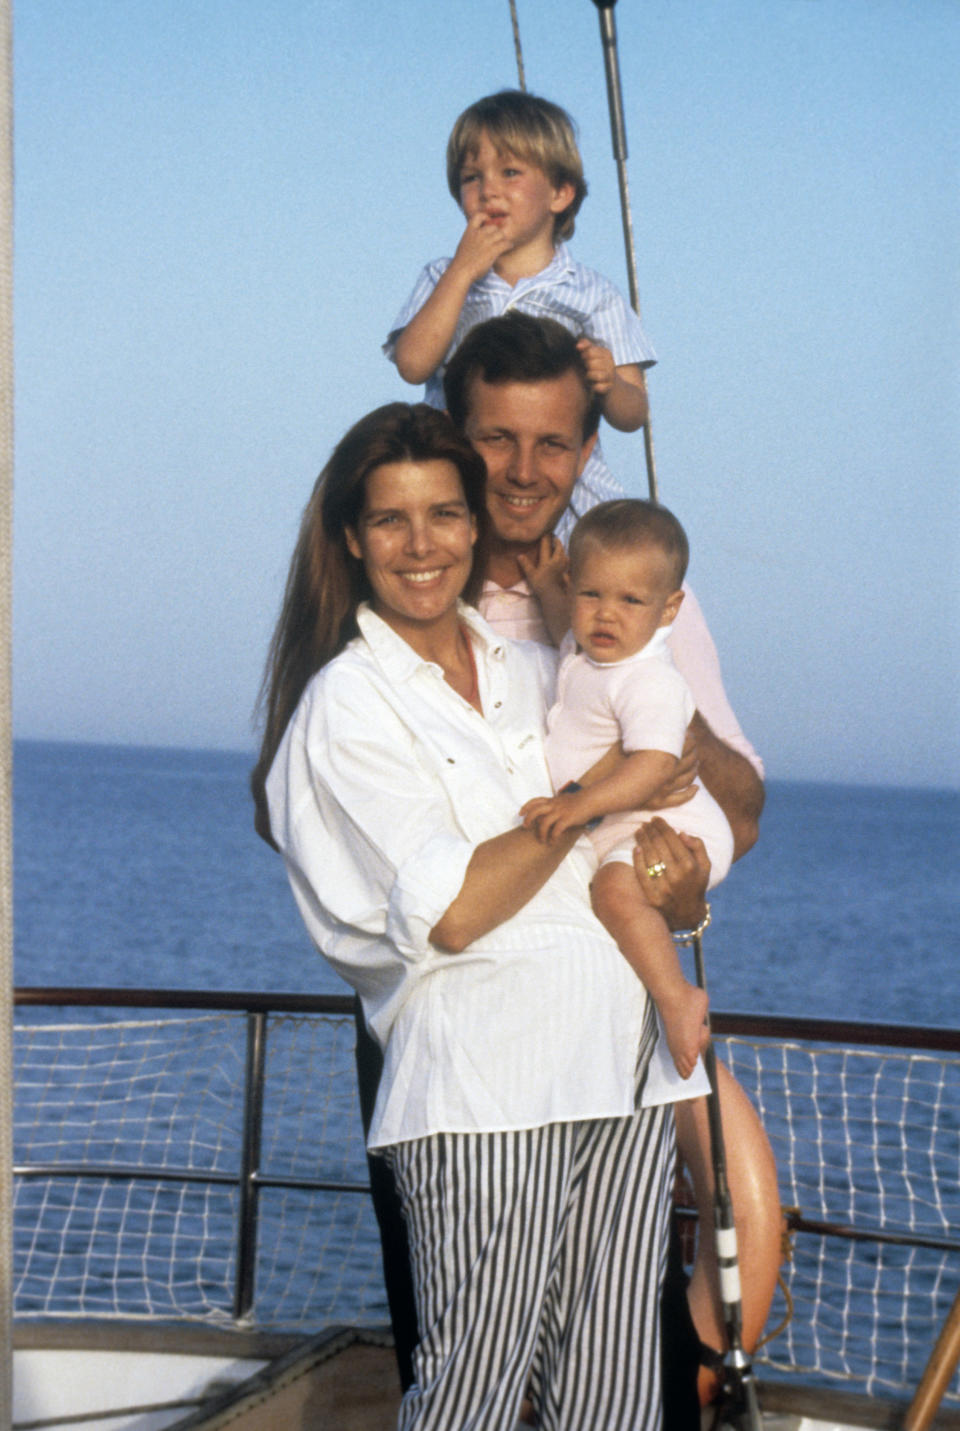 UNDATED: Princess Caroline of Monaco in a boat together with her husband Stefano Casiraghi, and their two children Andrea and Charlotte. . (Photo by Mondadori via Getty Images)